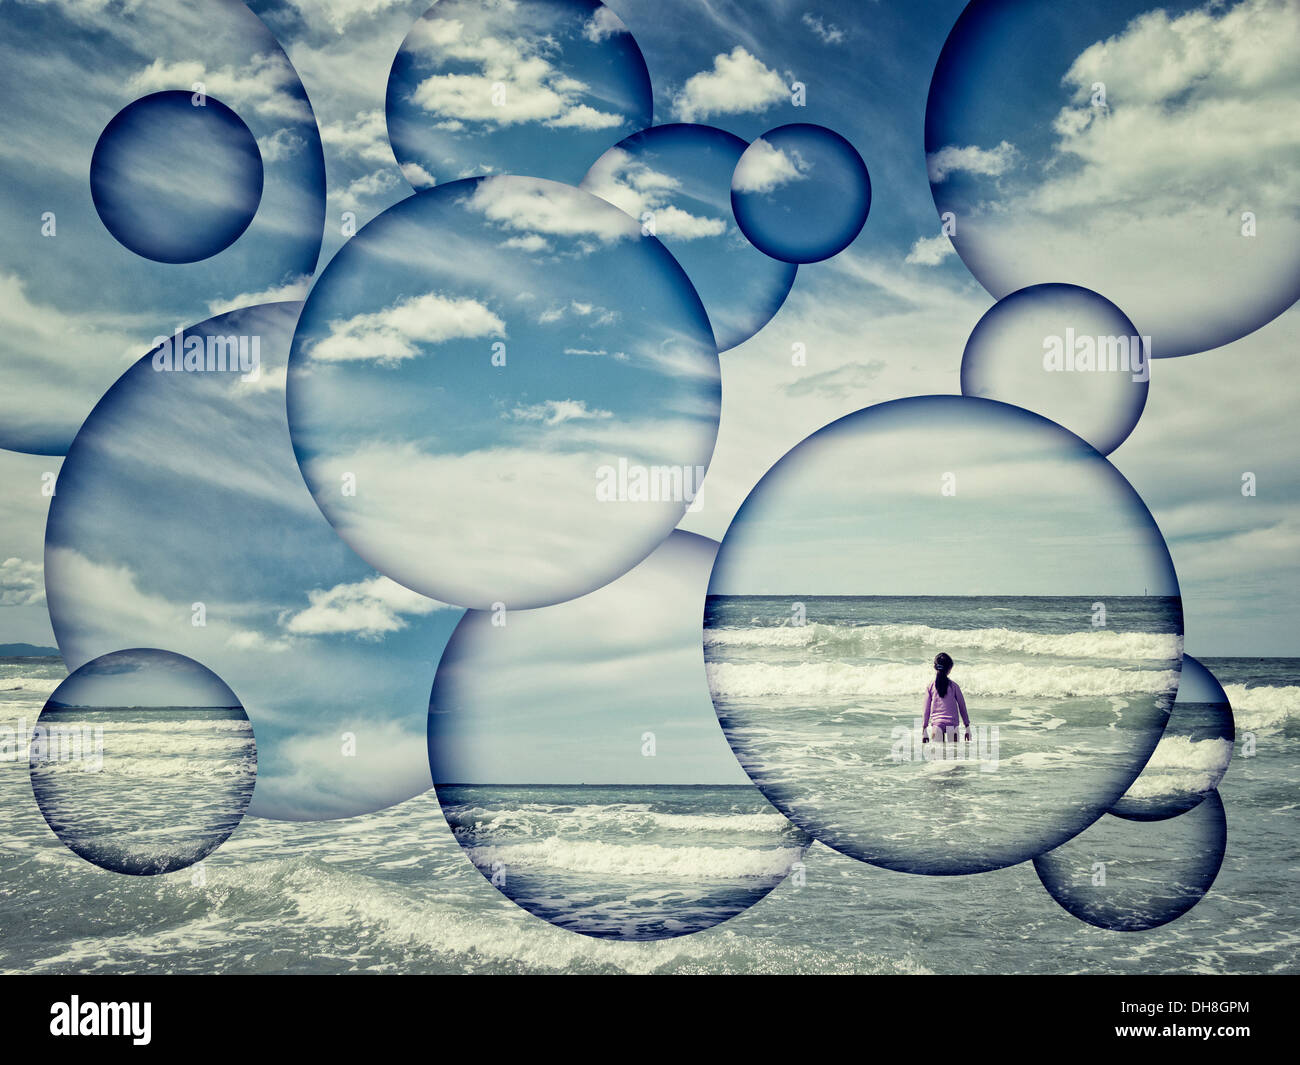 Girl, sea and waves abstract. - Stock Image